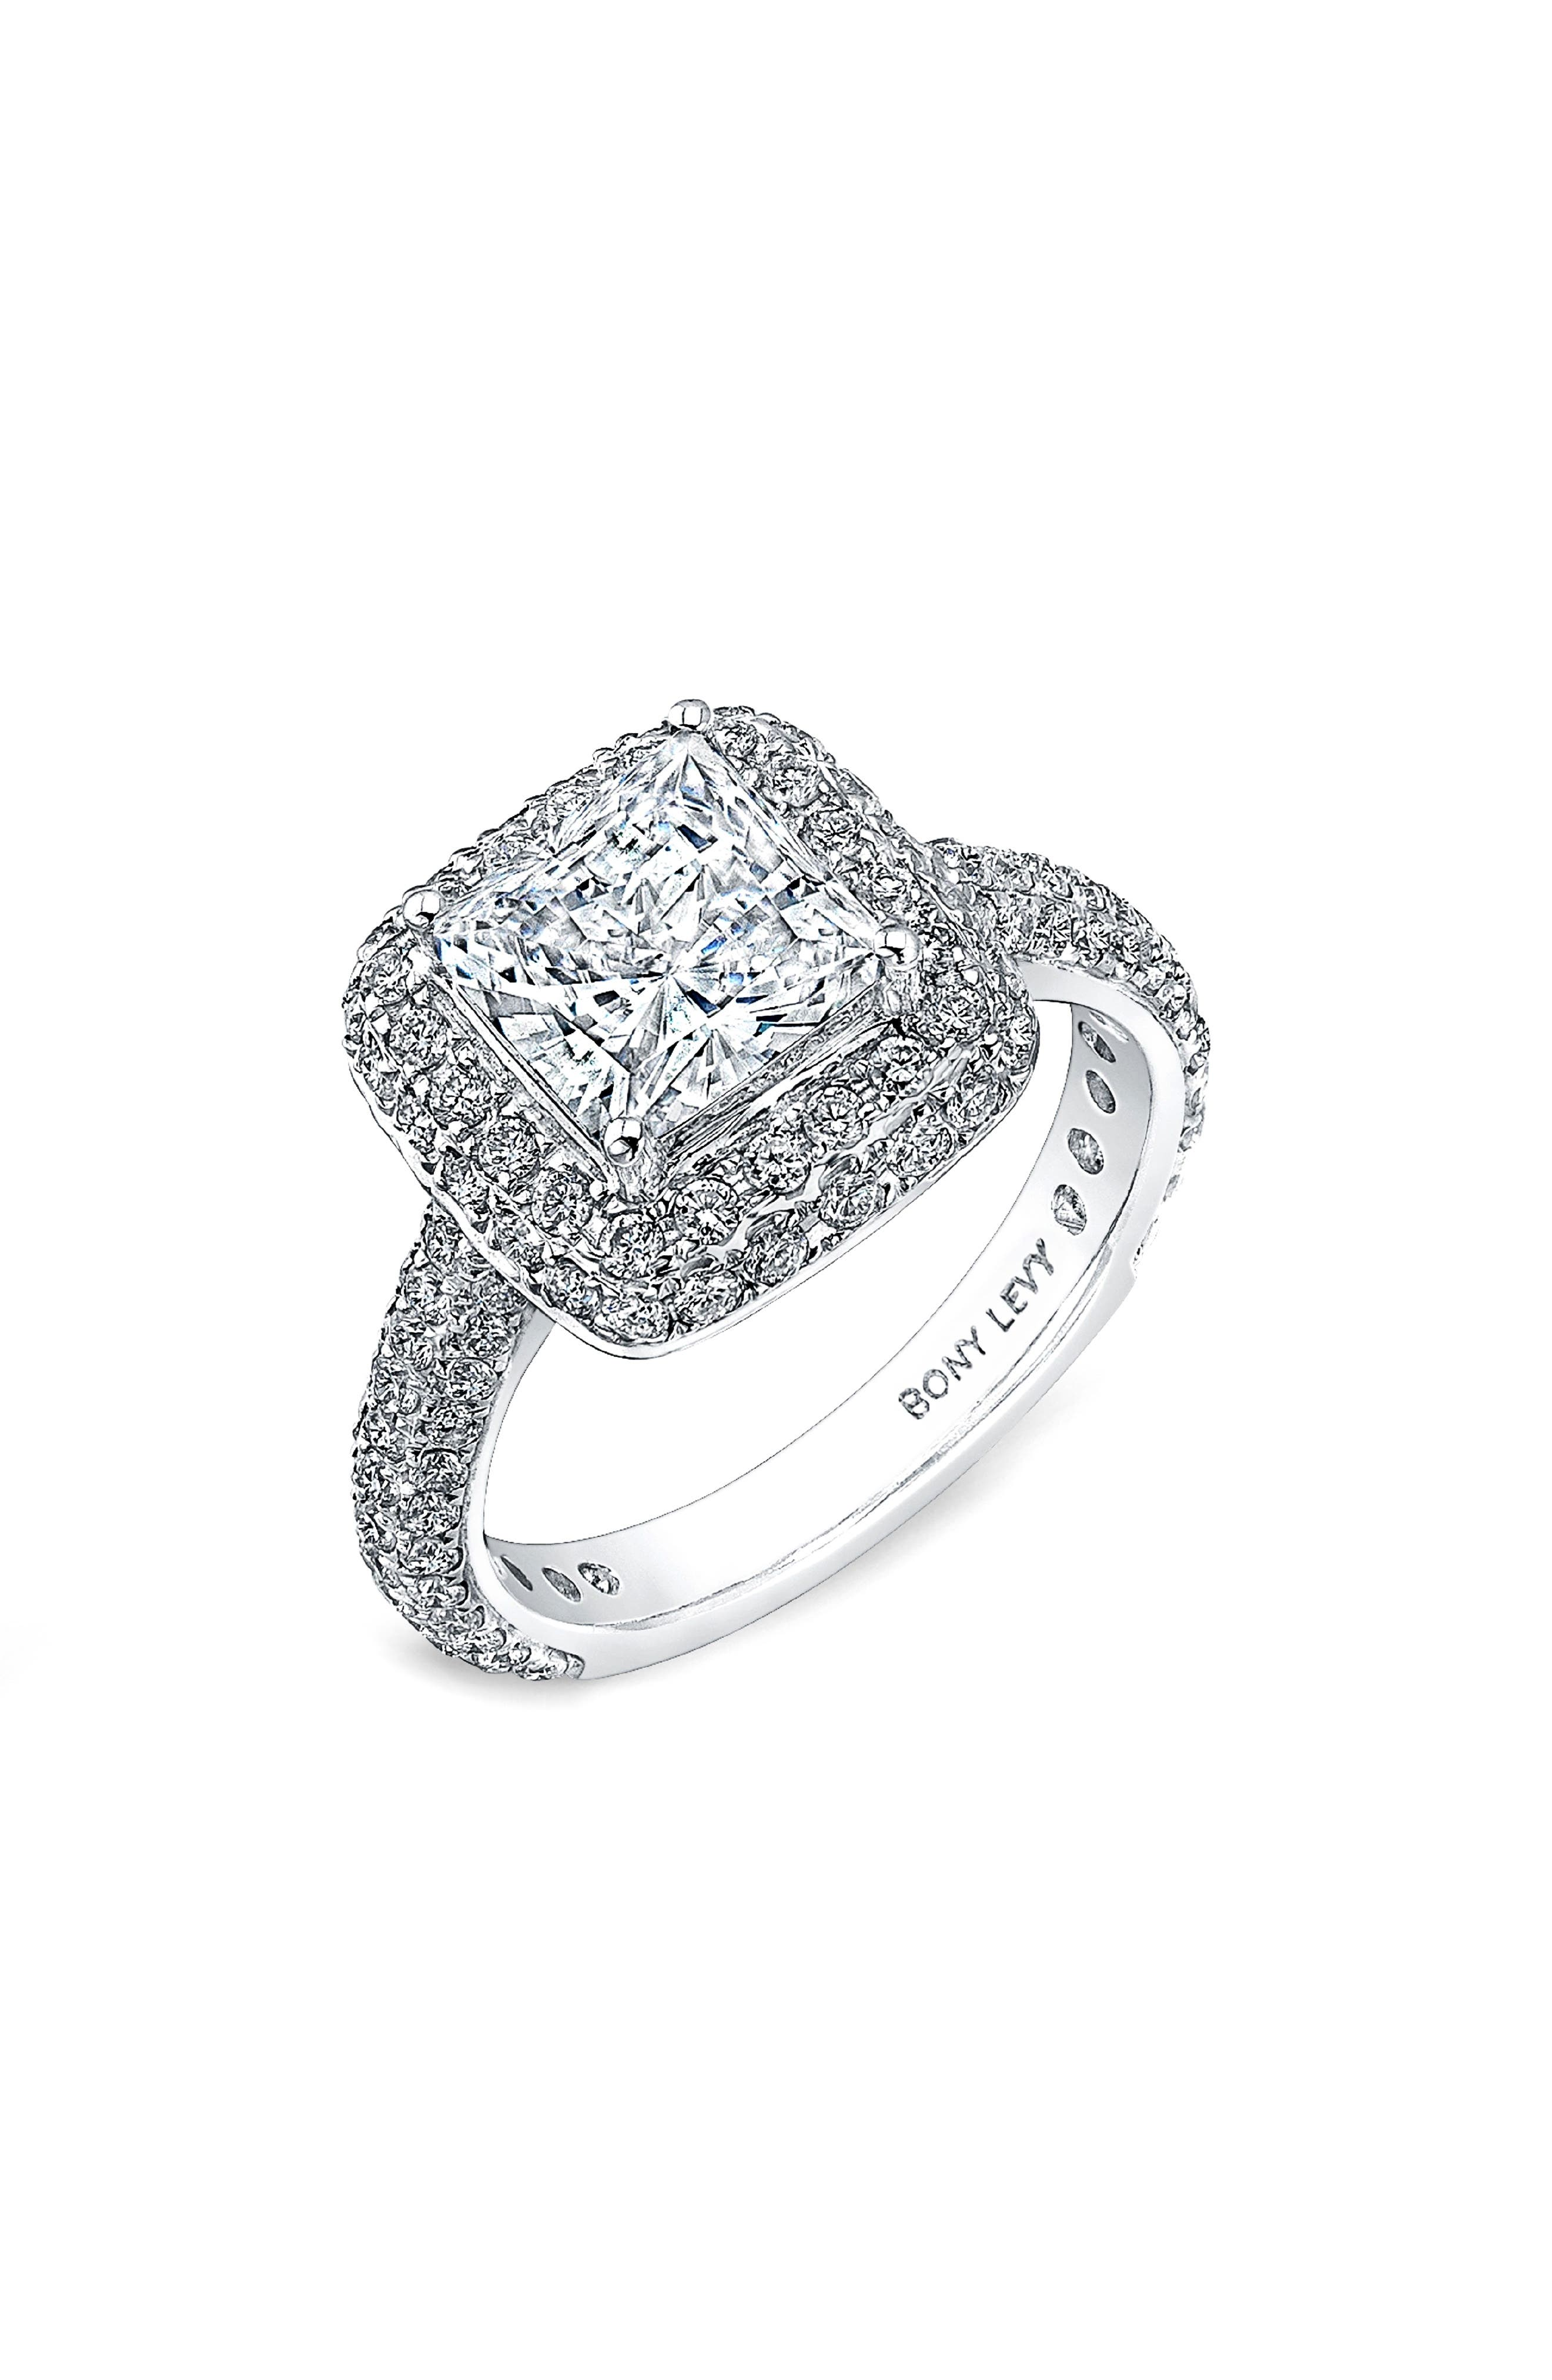 Pave Diamond Double Halo Princess Engagement Ring Setting (Nordstrom Exclusive)